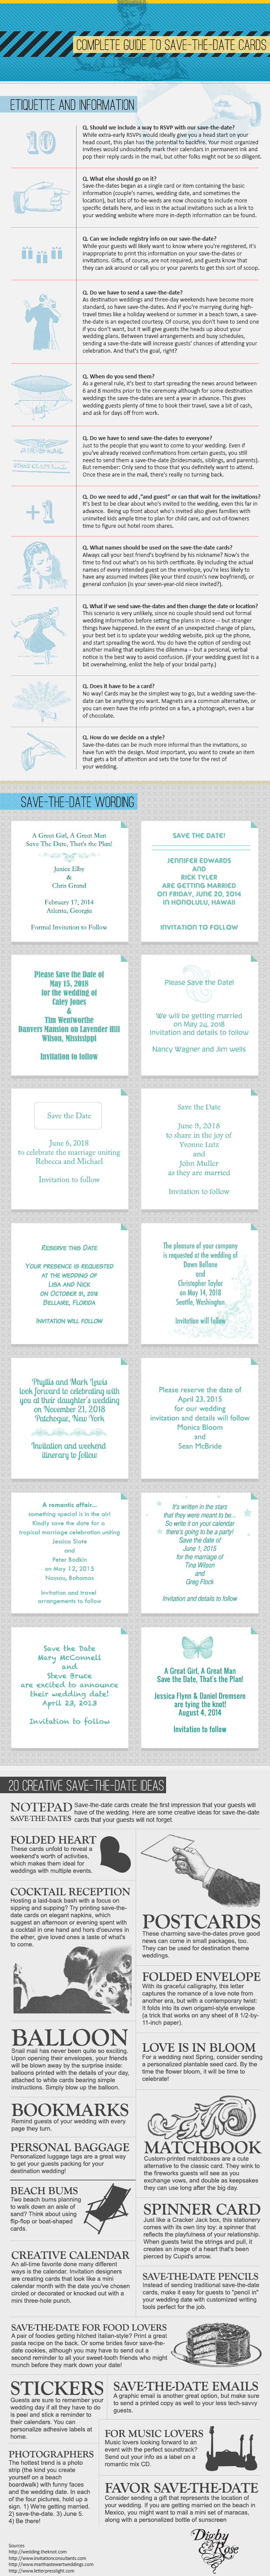 15 Destination Wedding Save the Date Wording Examples ...